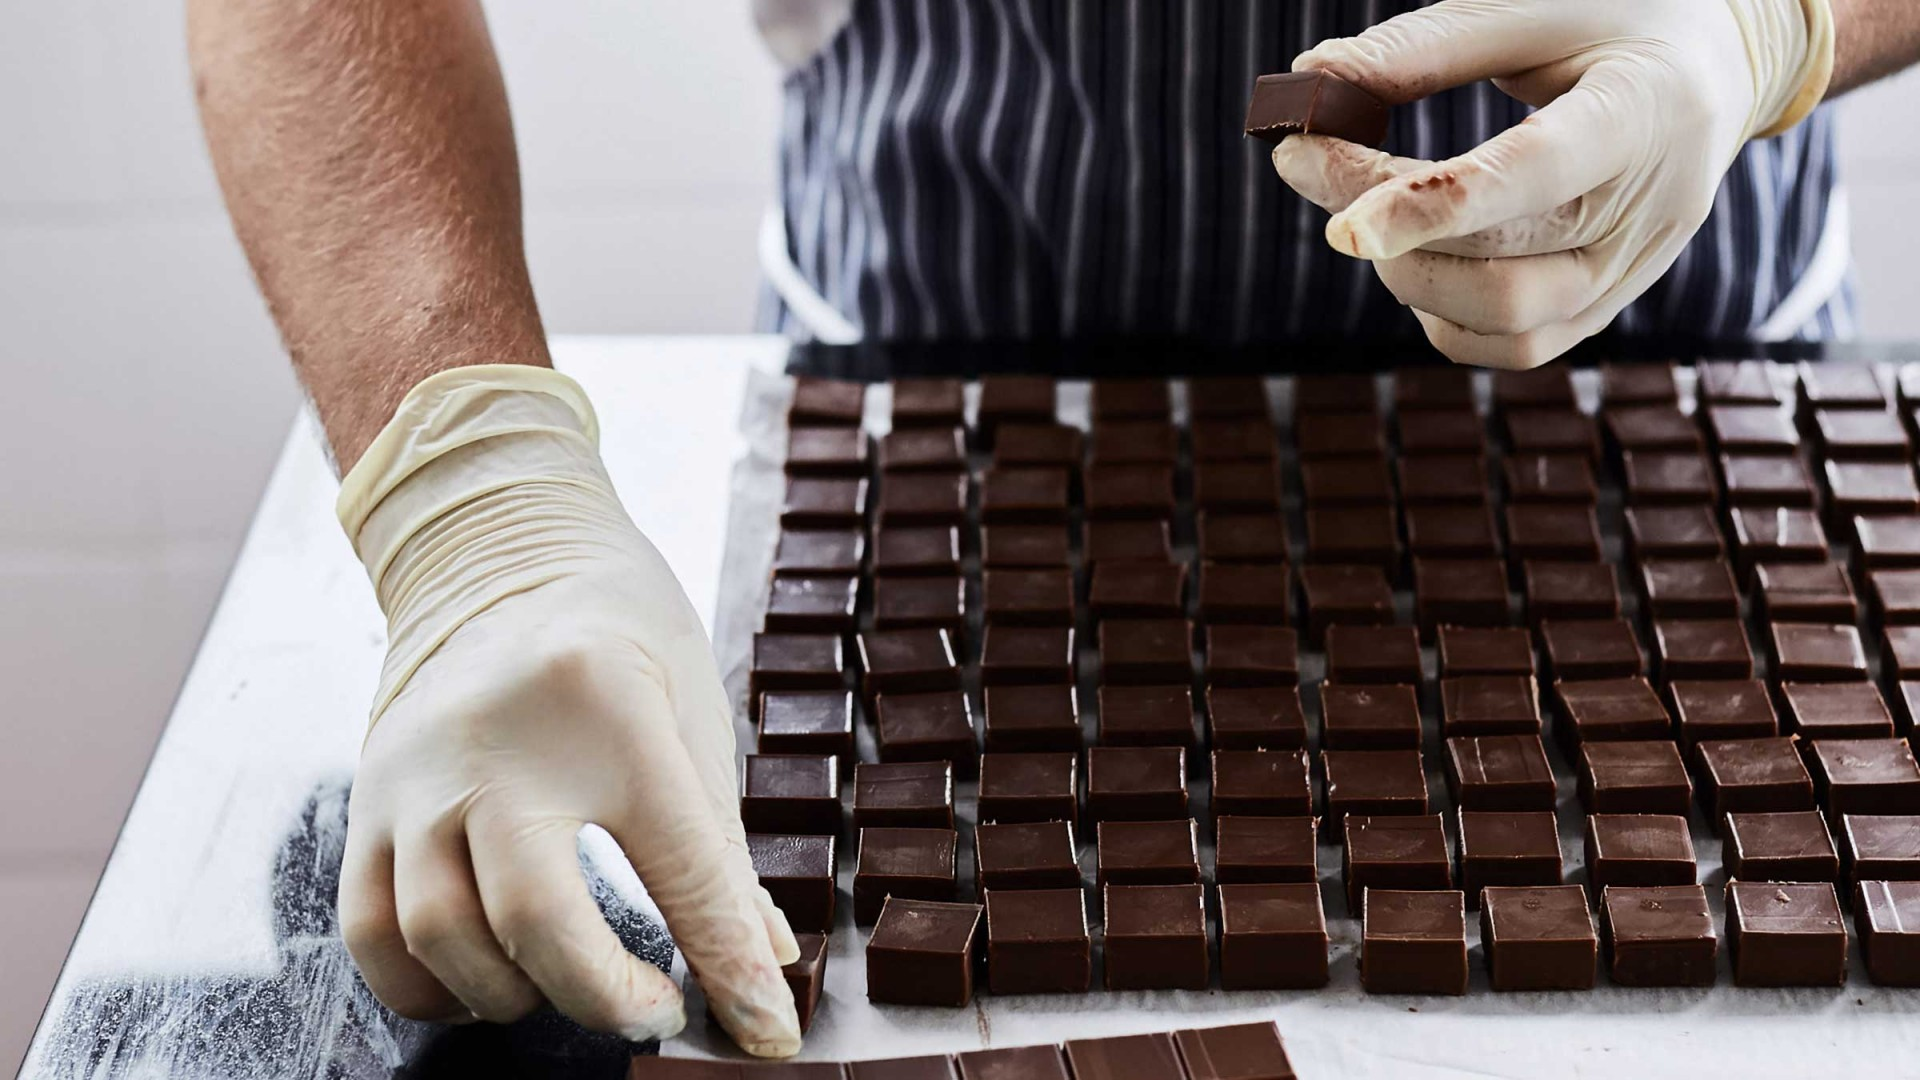 One of the Rococo team making fresh chocolates